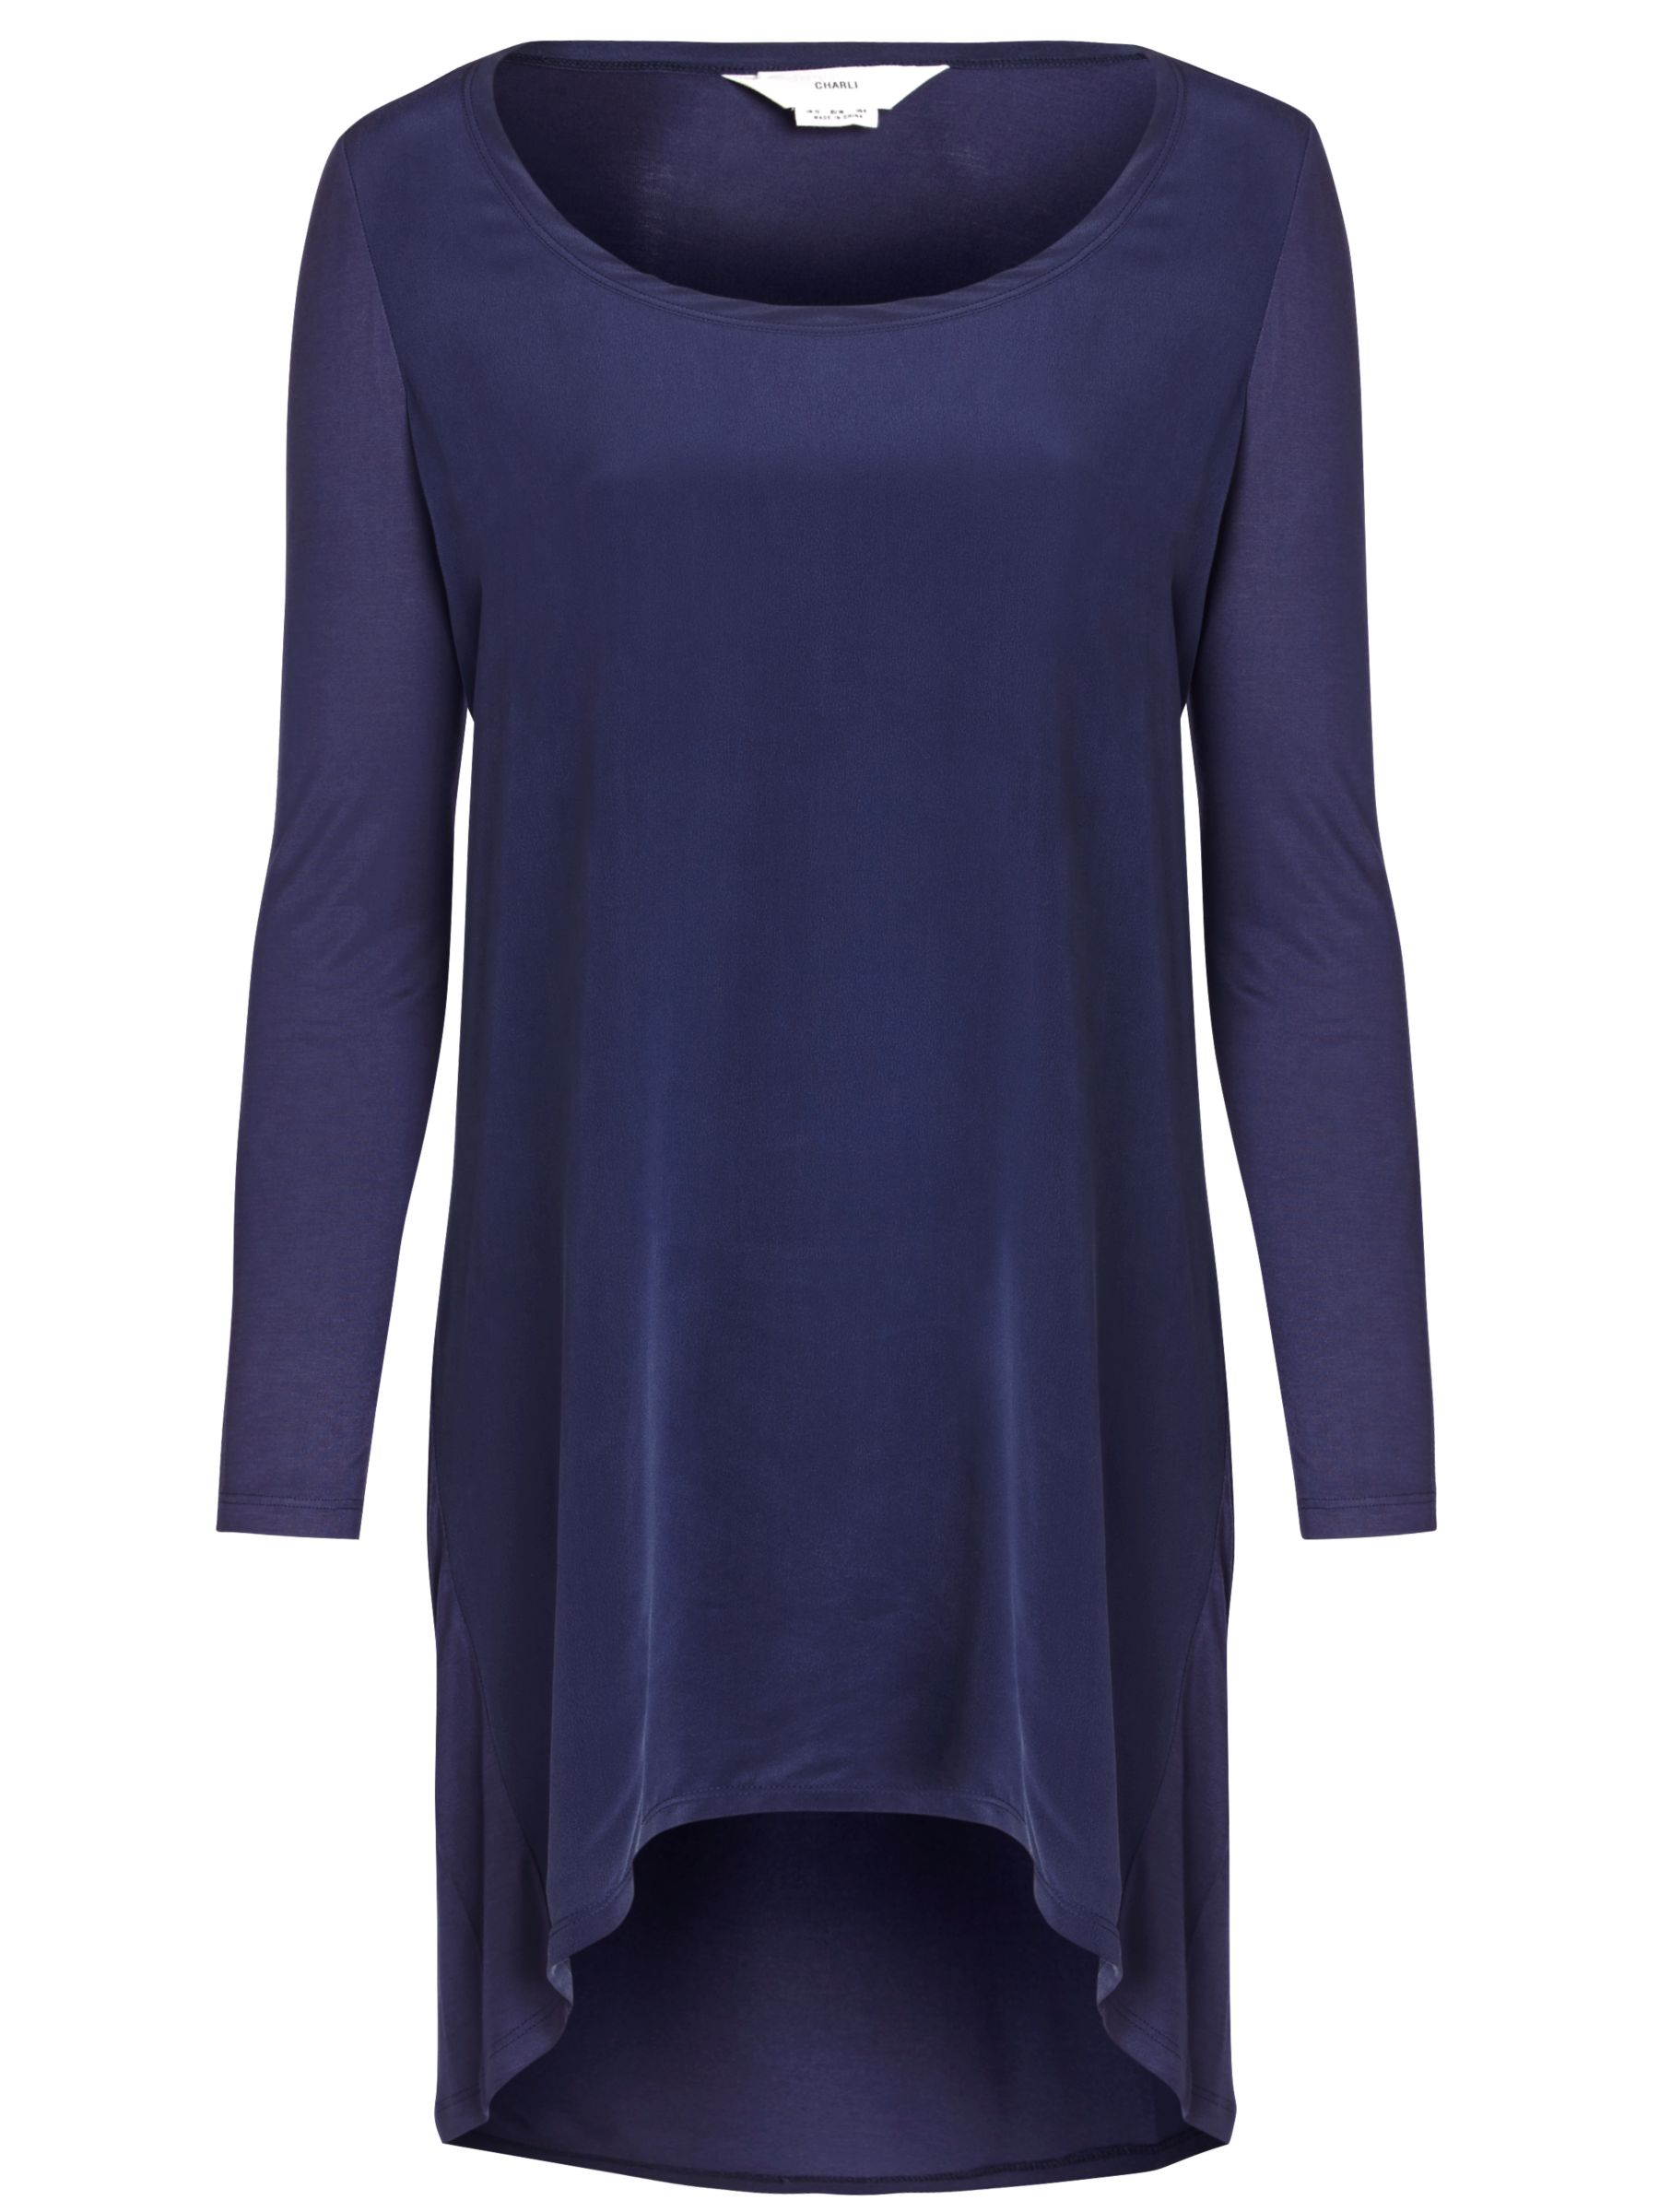 charli shirley silk midi dress navy, charli, shirley, silk, midi, dress, navy, 10|14|12, women, womens dresses, 1931620